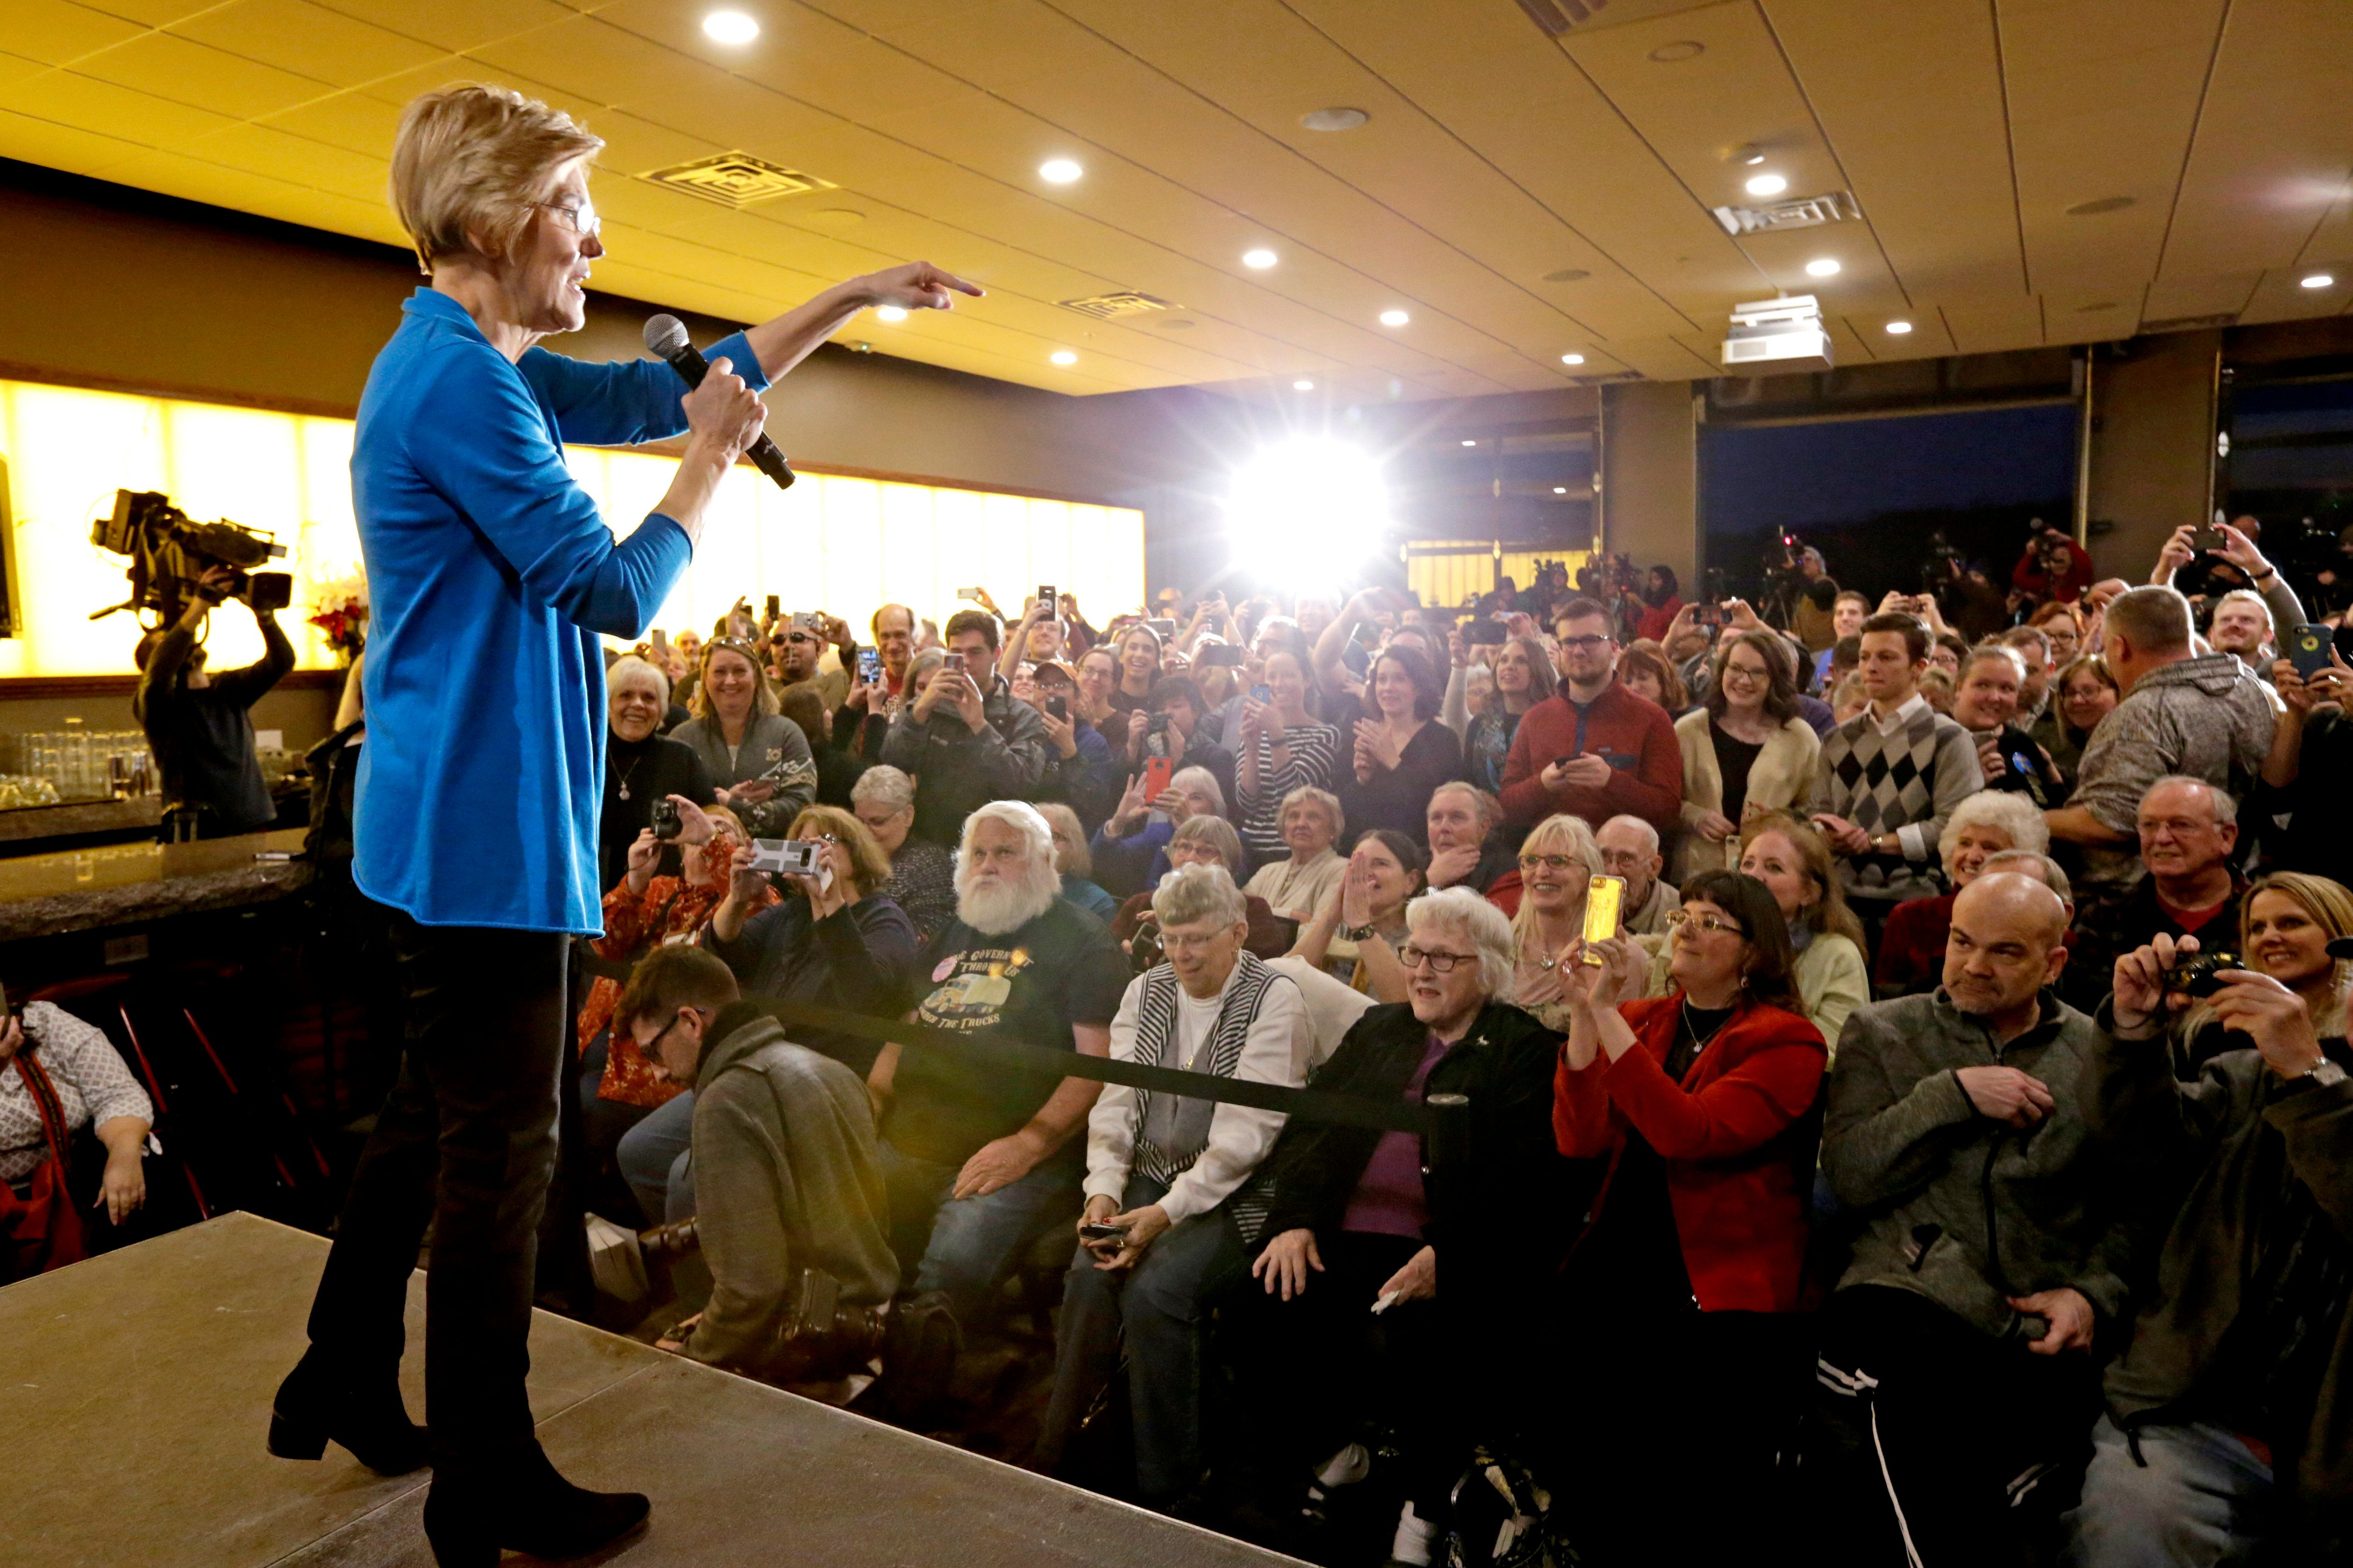 Sen. Elizabeth Warren, D-Mass, addresses the crowd at an organizing event at McCoy's Bar Patio and Grill in Council Bluffs, Iowa, Friday, Jan. 4, 2019. Warren is making her first visit to Iowa this weekend as a likely presidential candidate, testing how her brand of fiery liberalism plays in the nation's premier caucus state. (AP Photo/Nati Harnik)